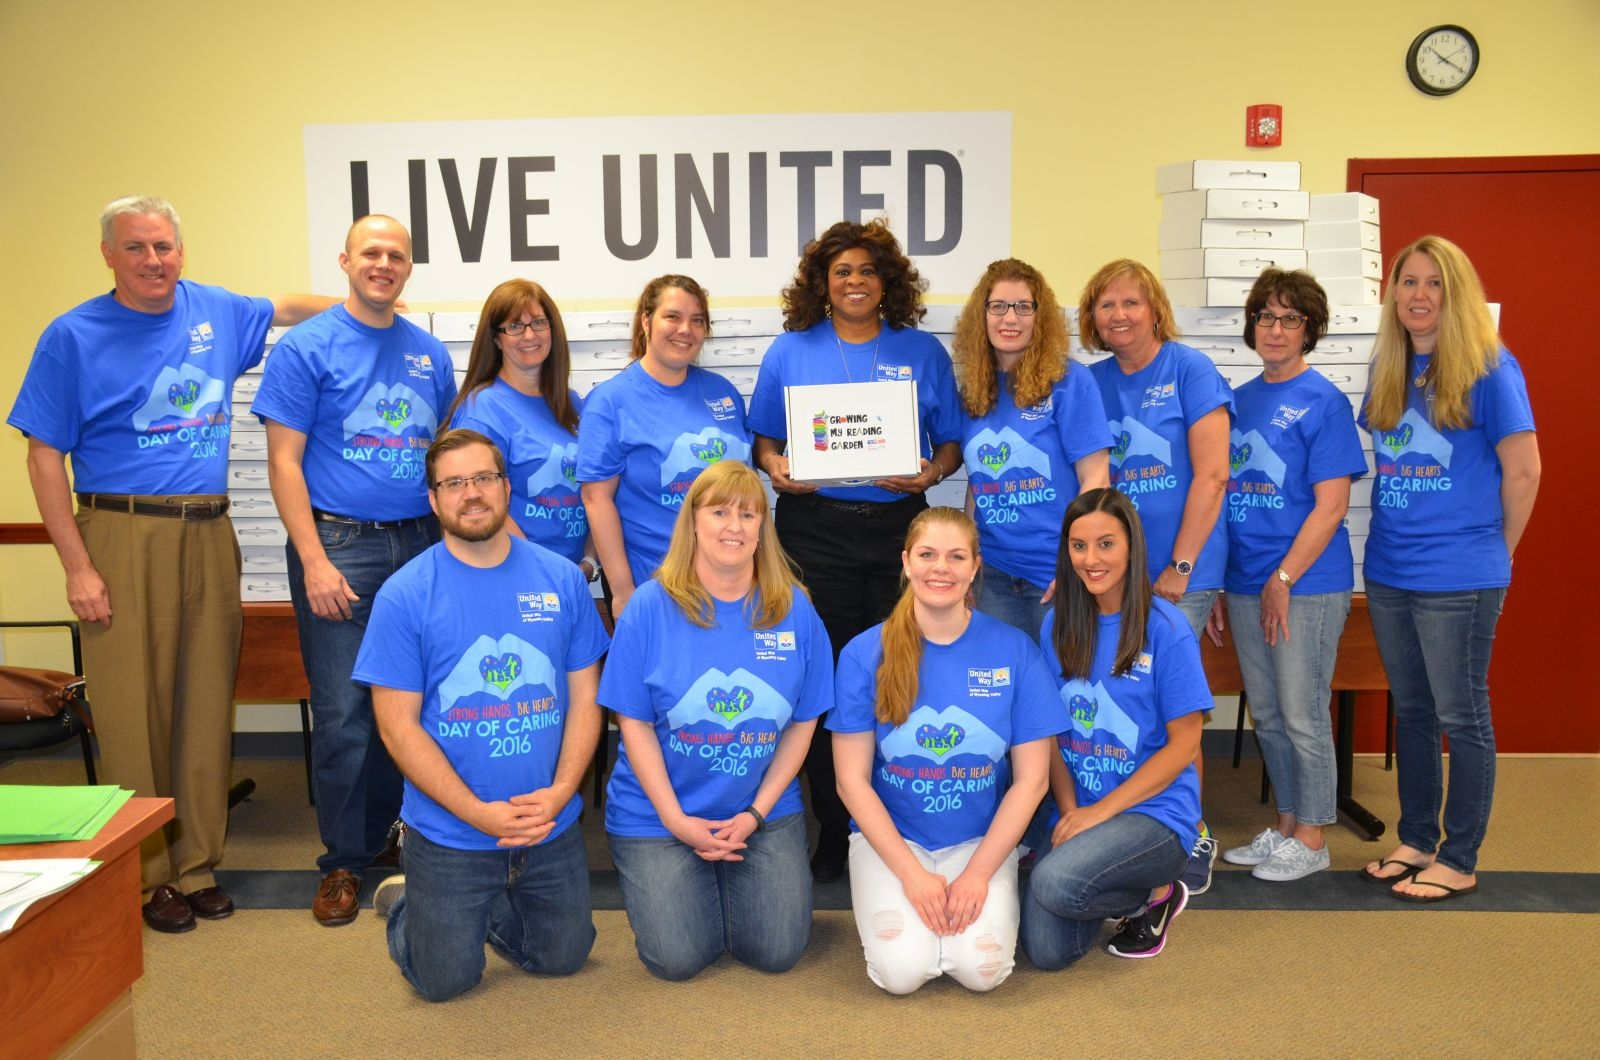 United Way of Wyoming Valley has sponsored its annual Day of Caring. See these great volunteers at work!